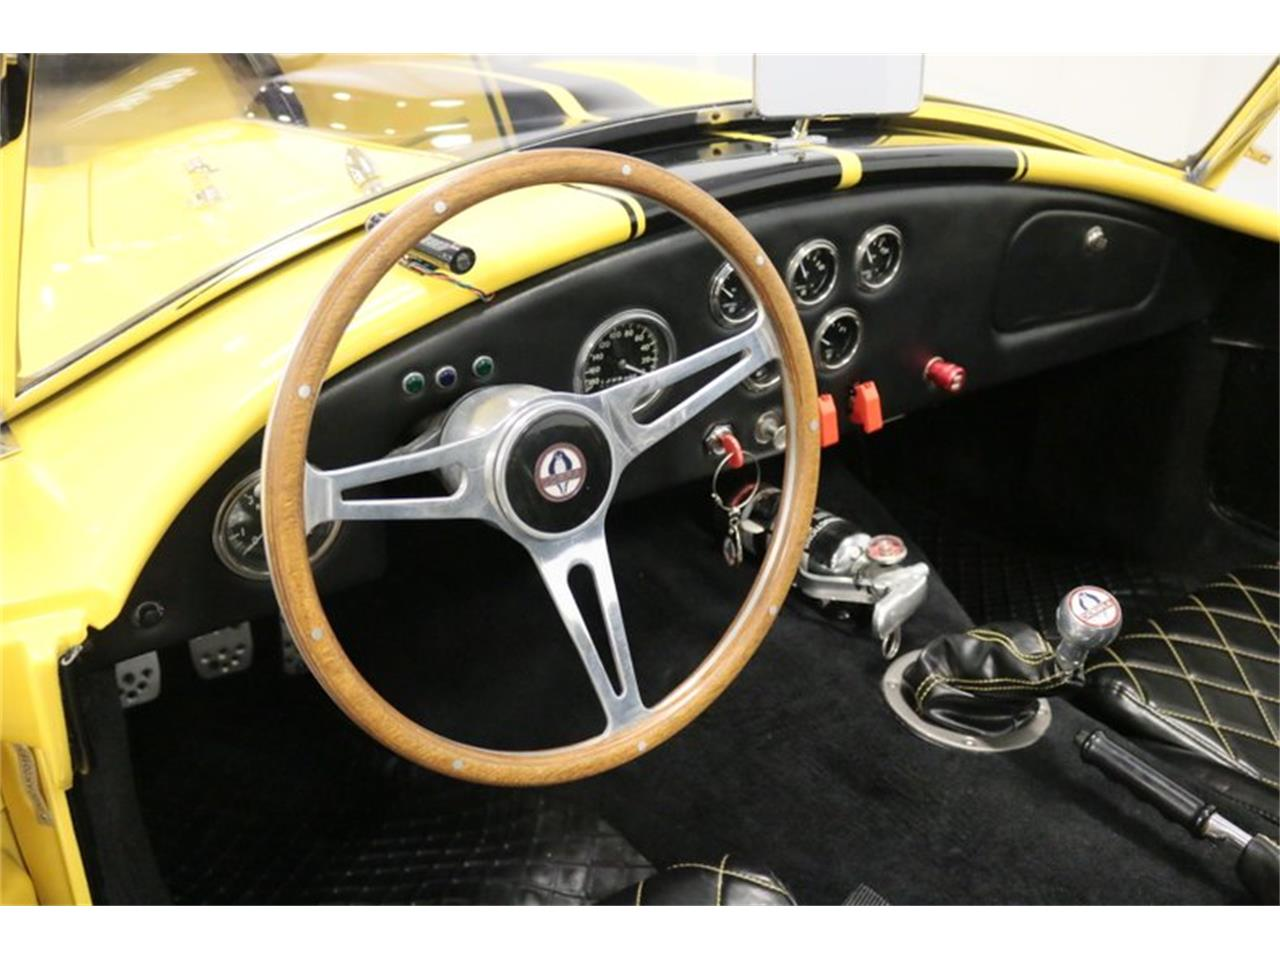 Large Picture of Classic '66 Cobra located in Ft Worth Texas - $67,995.00 - QJSF